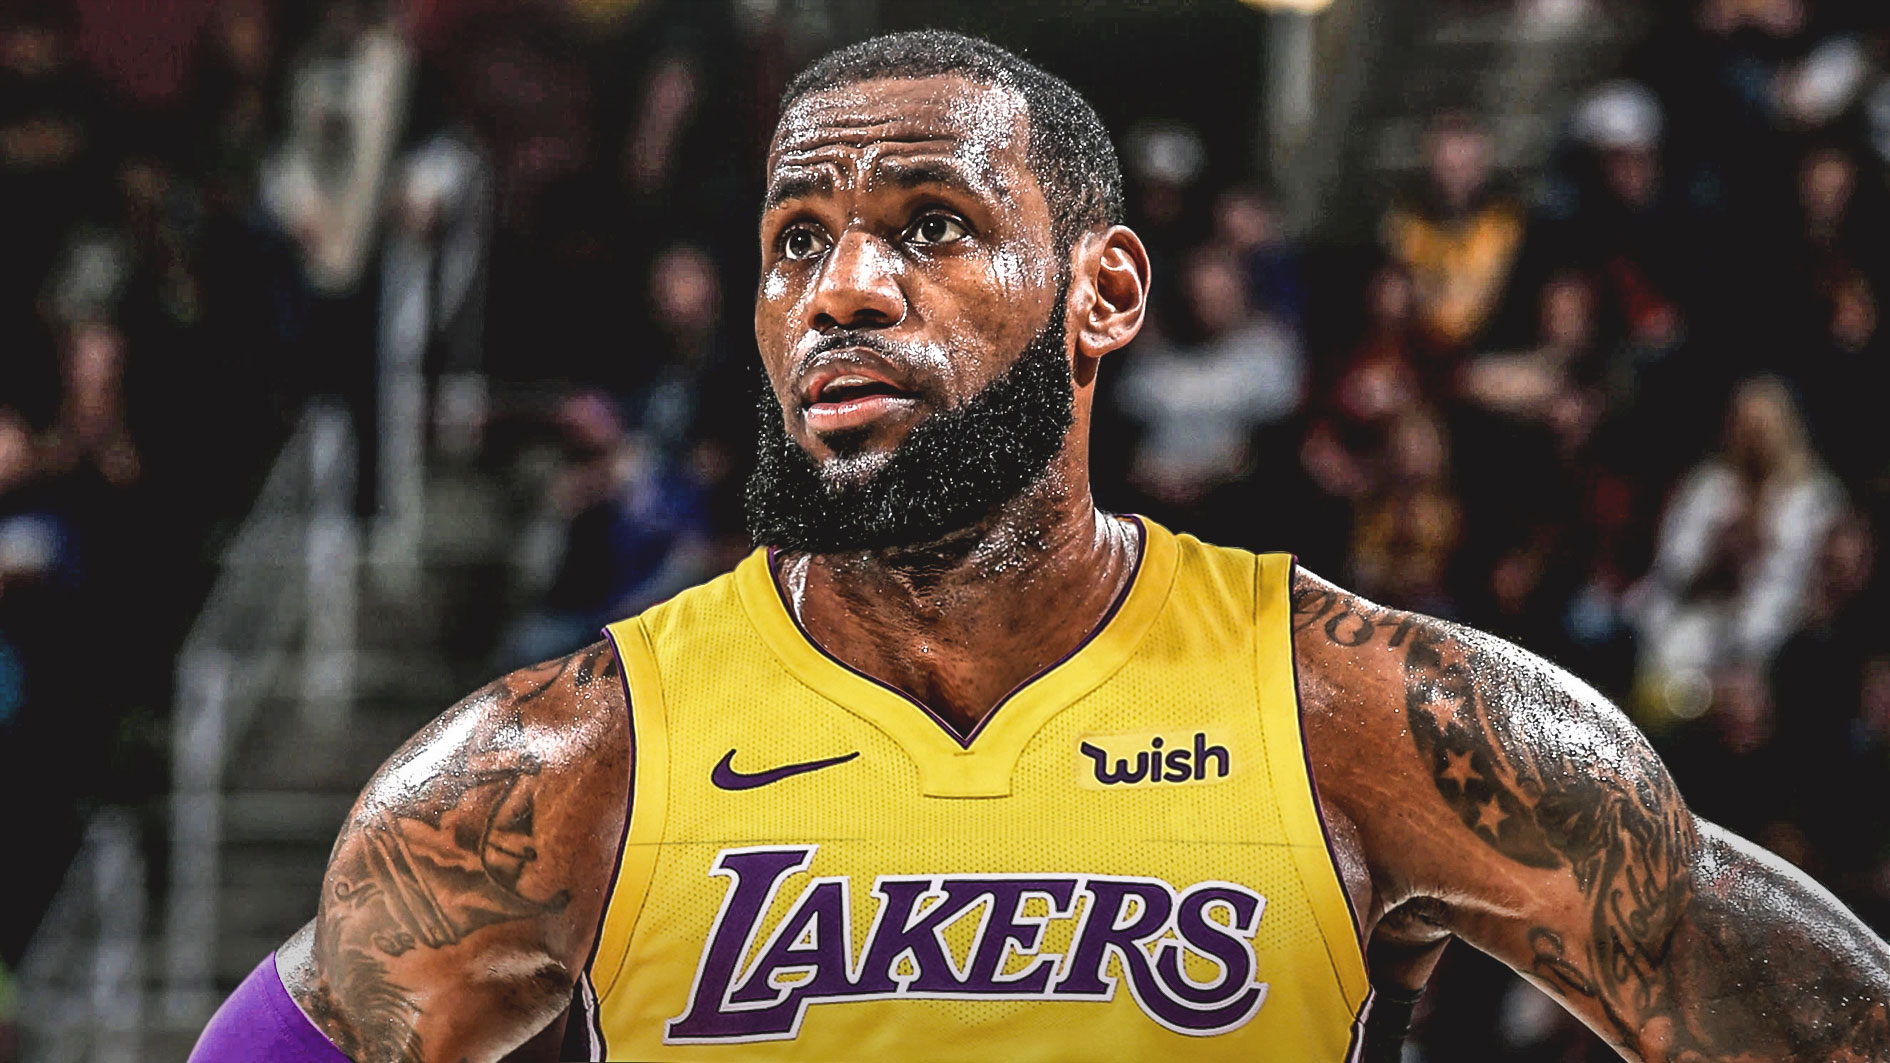 LeBron James è un giocatore dei Los Angeles Lakers